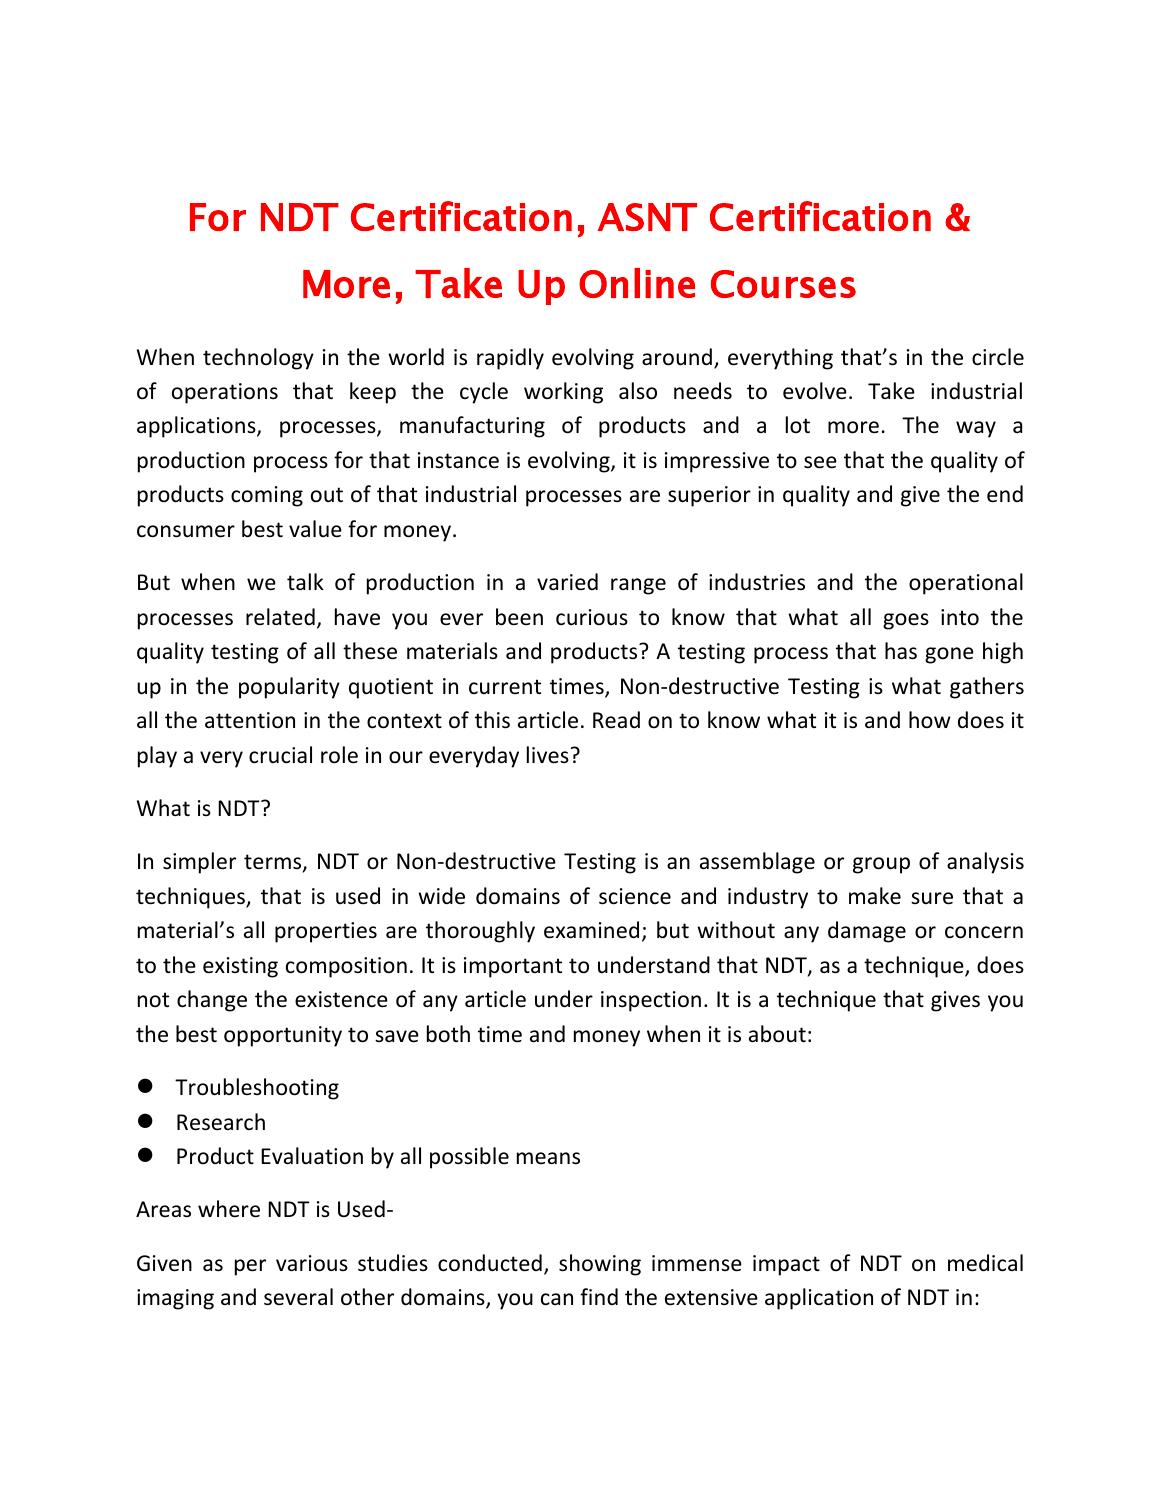 For Ndt Certification Asnt Certification More Take Up Online